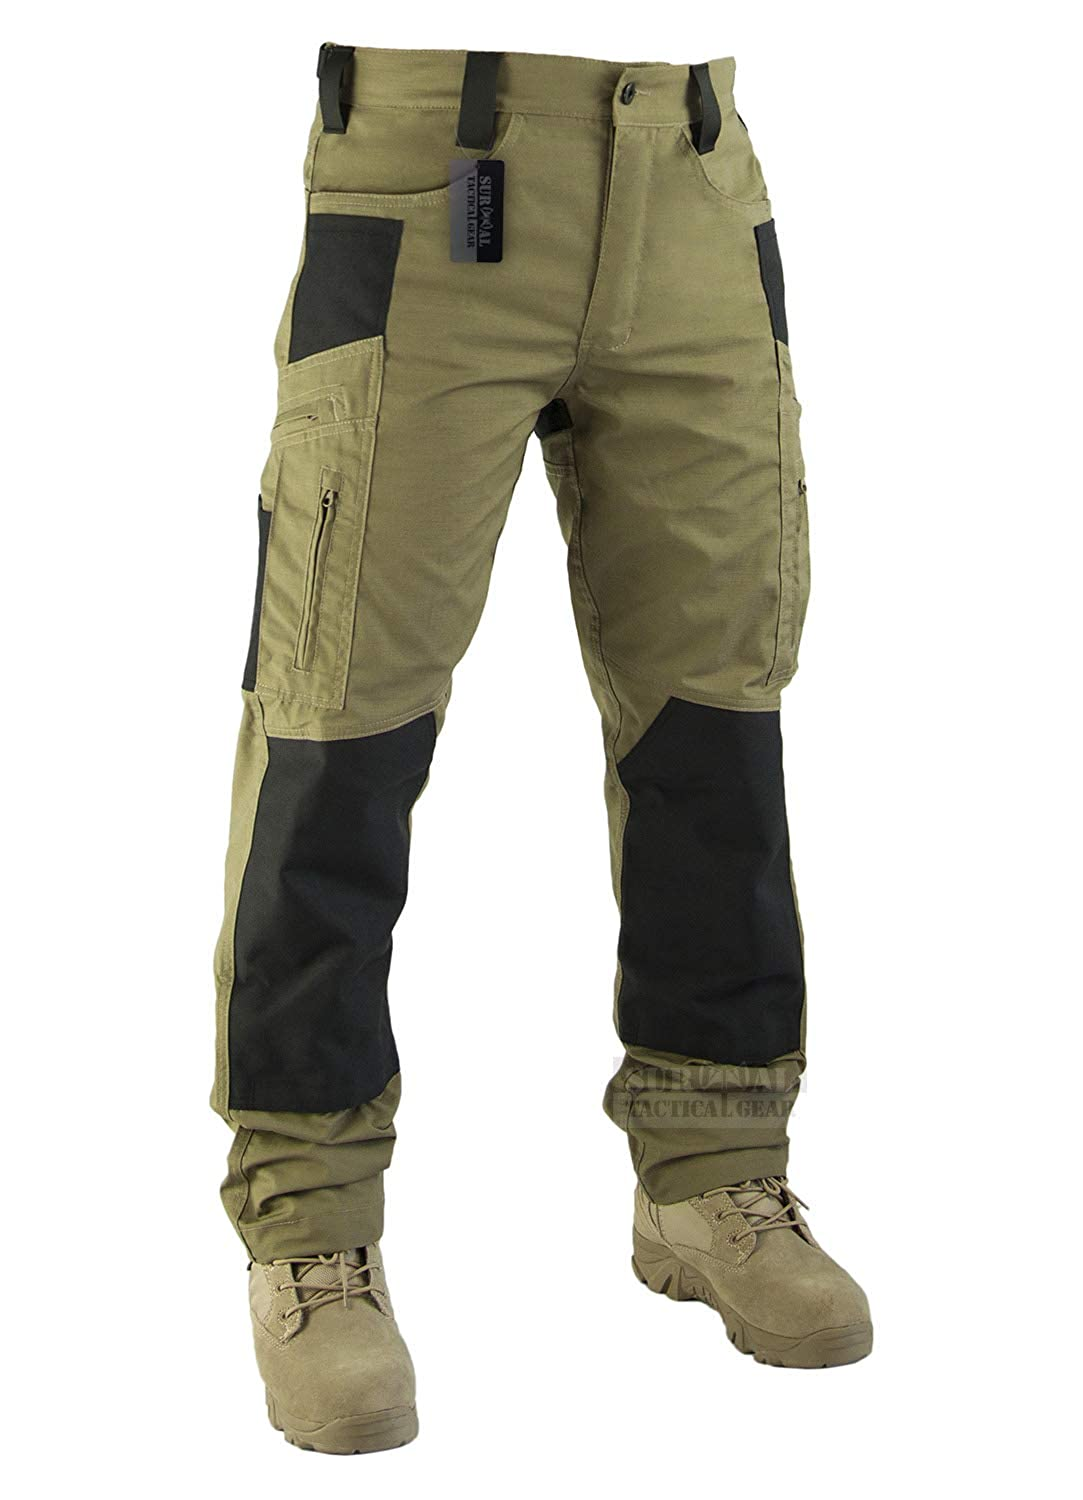 Survival Tactical Gear Men/'s Ripstop Pants Outdoor Military Camo Cargo Trousers for Camping Hiking